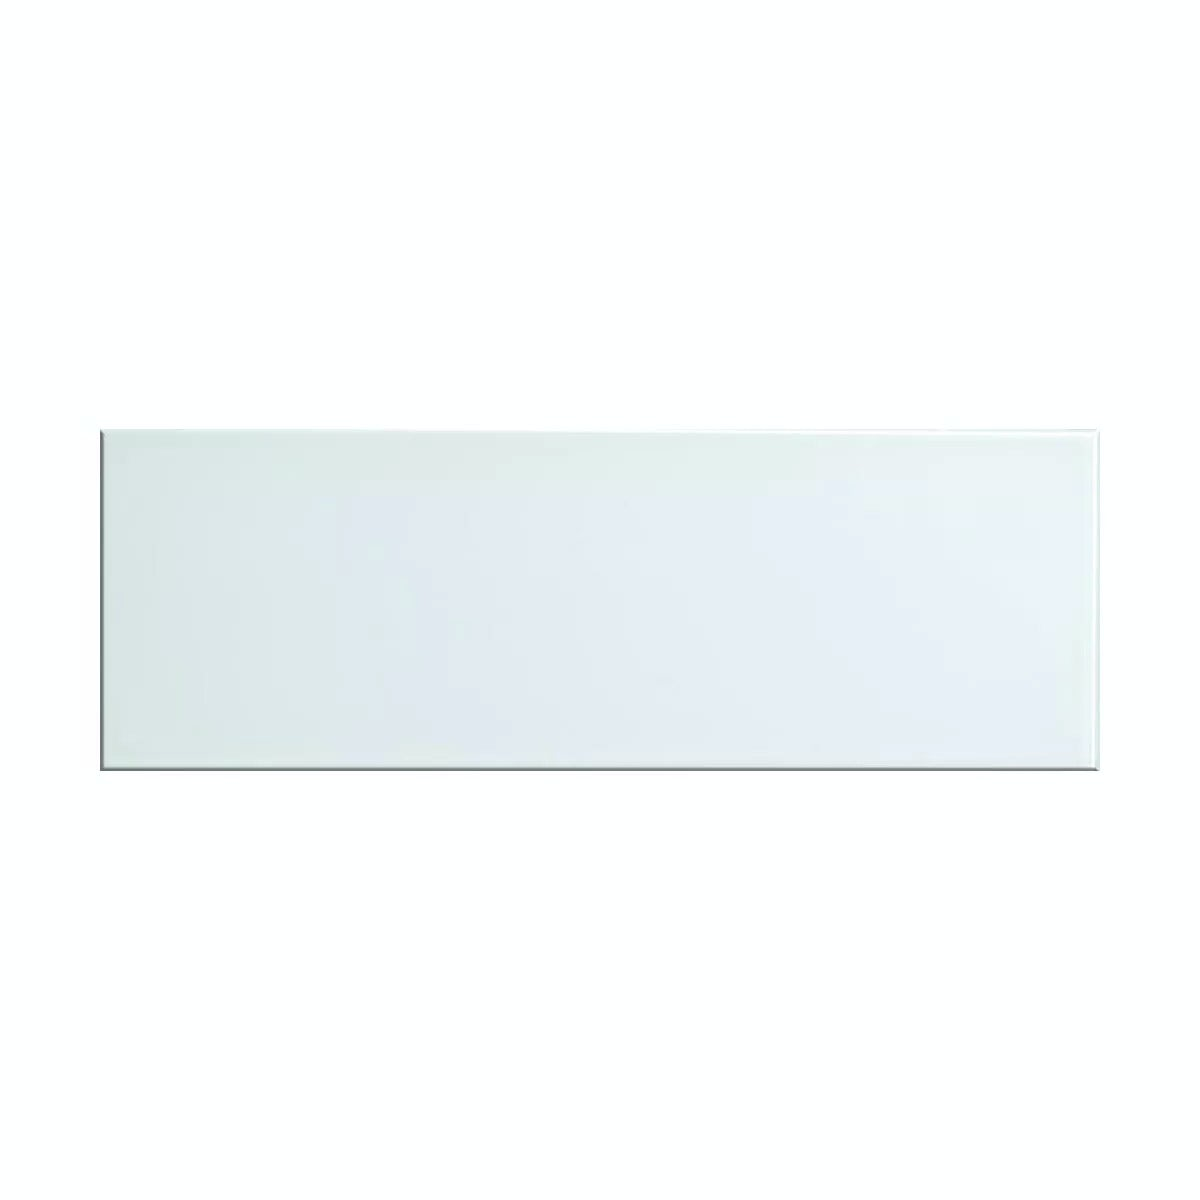 British Ceramic Tile glass whisper white gloss tile 148mm x 448mm - Box of 5